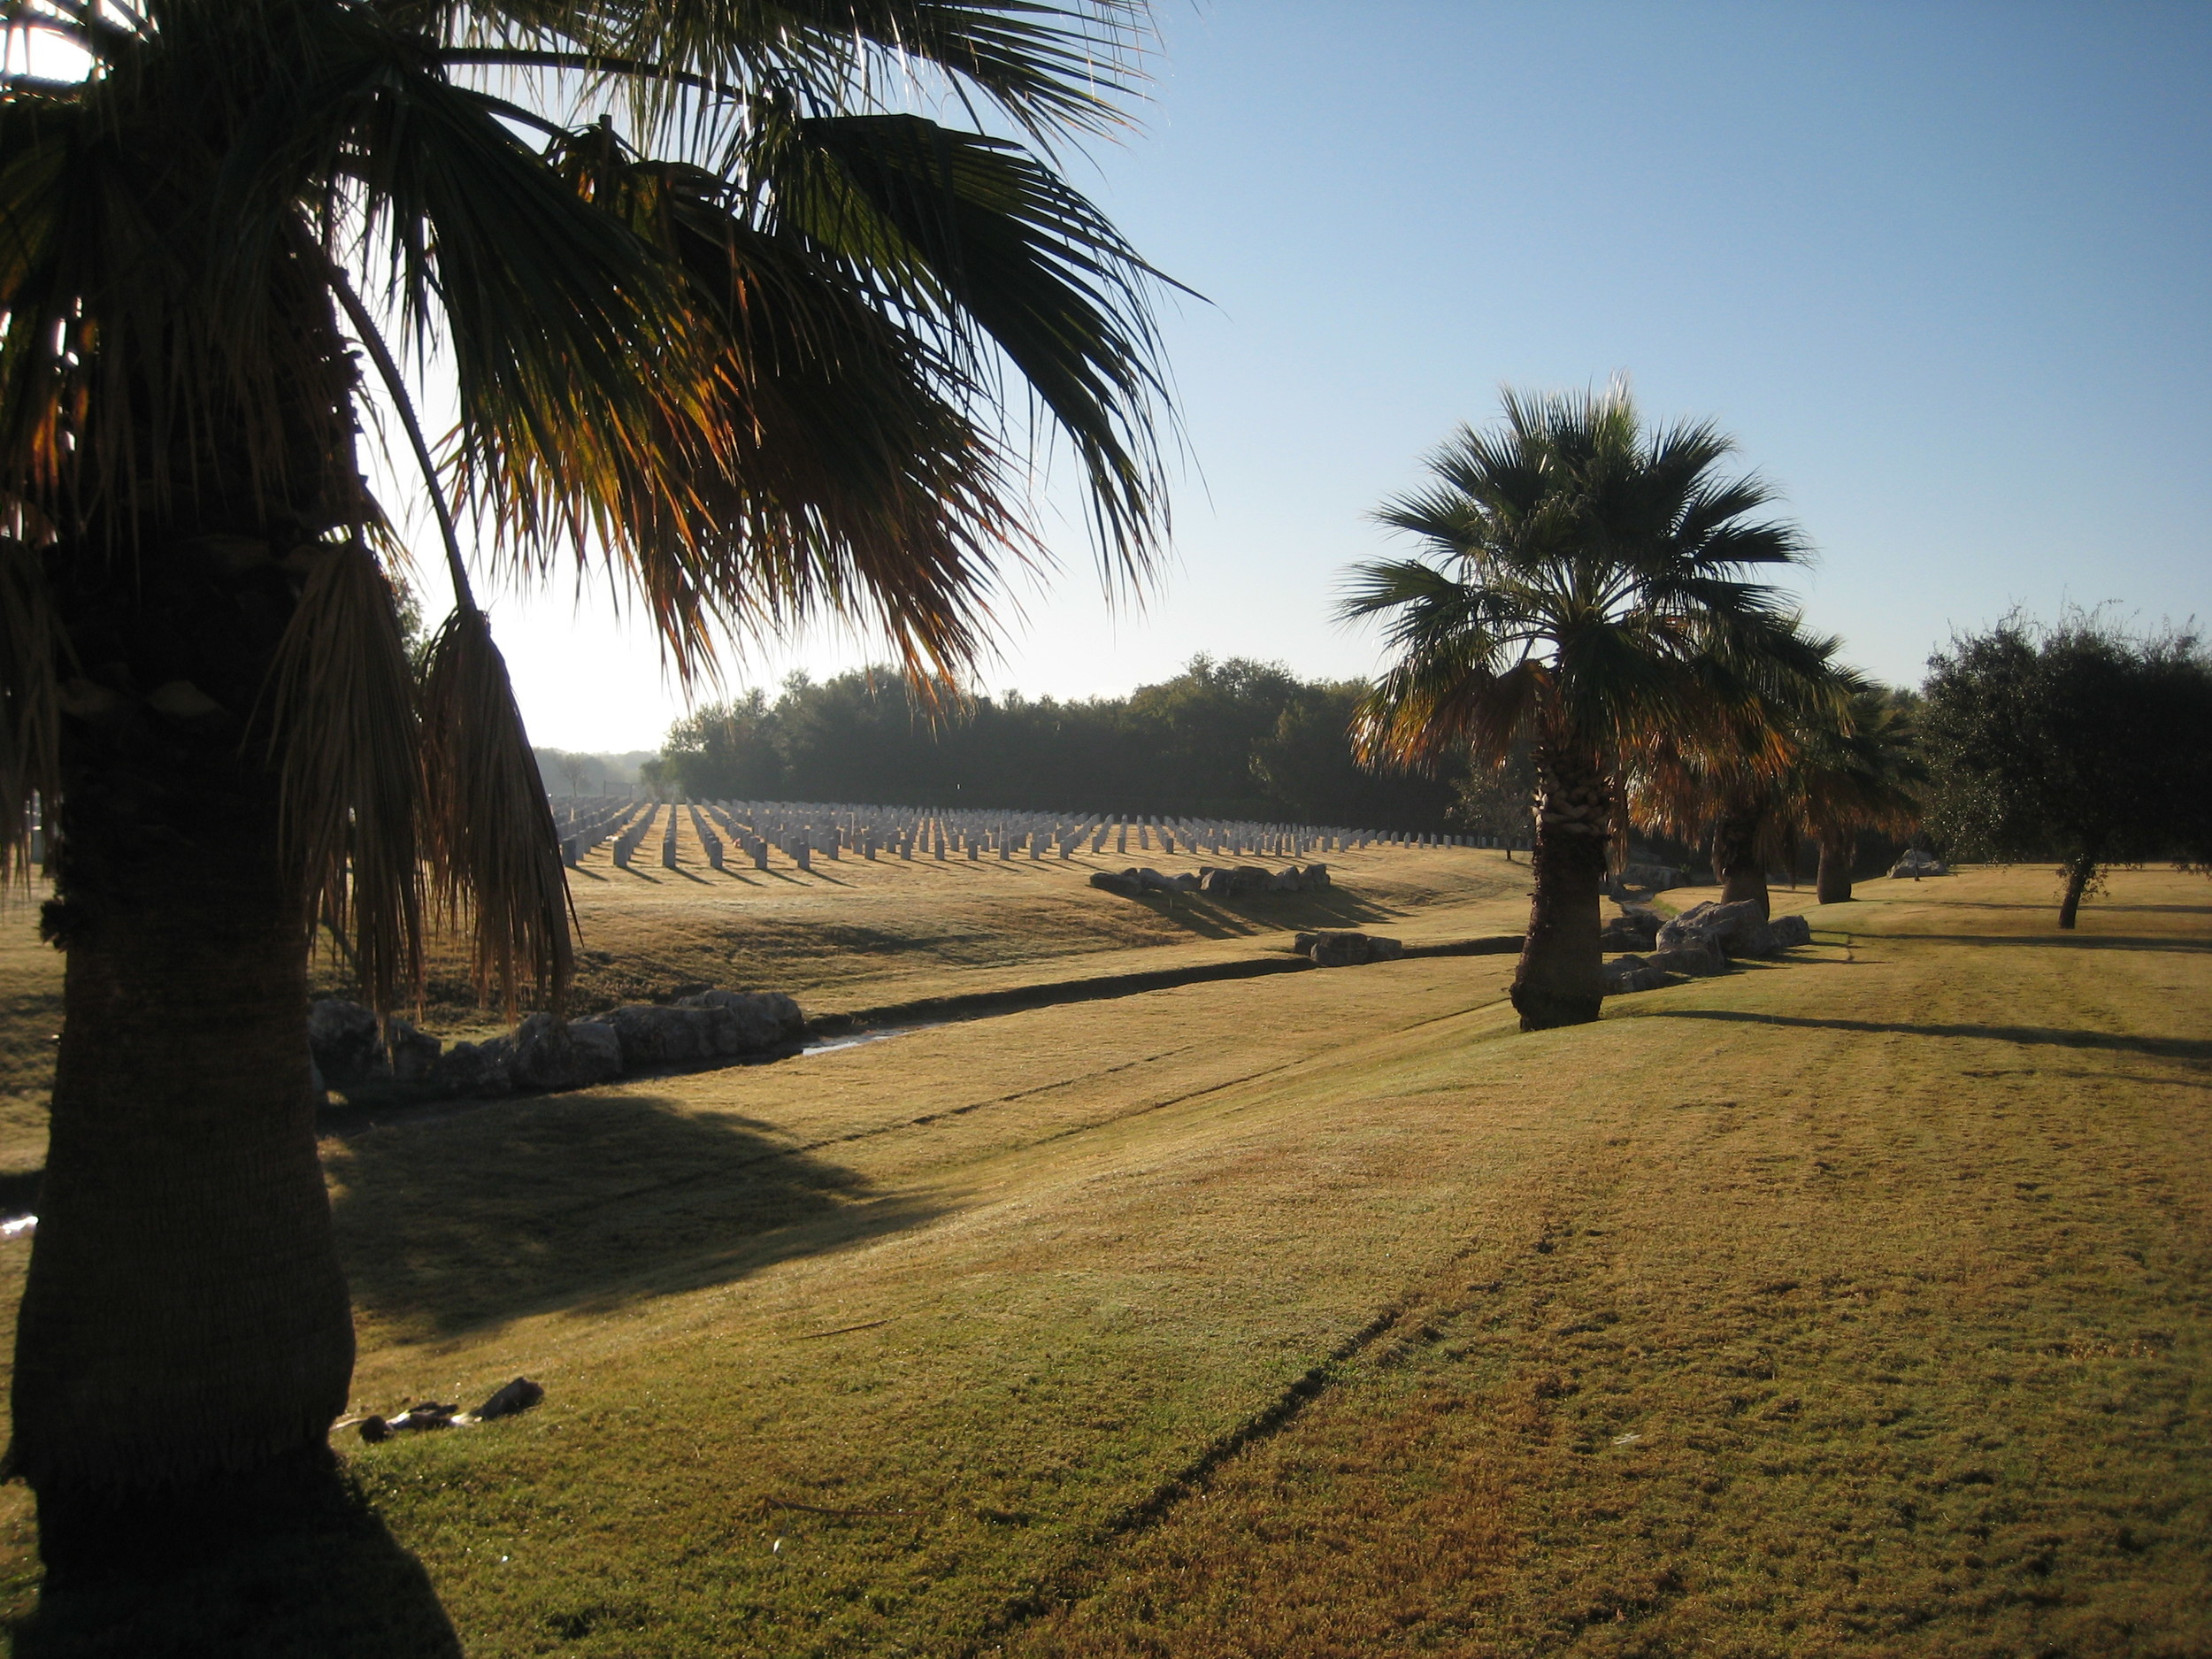 View of Fort Sam Houston National Cemetery